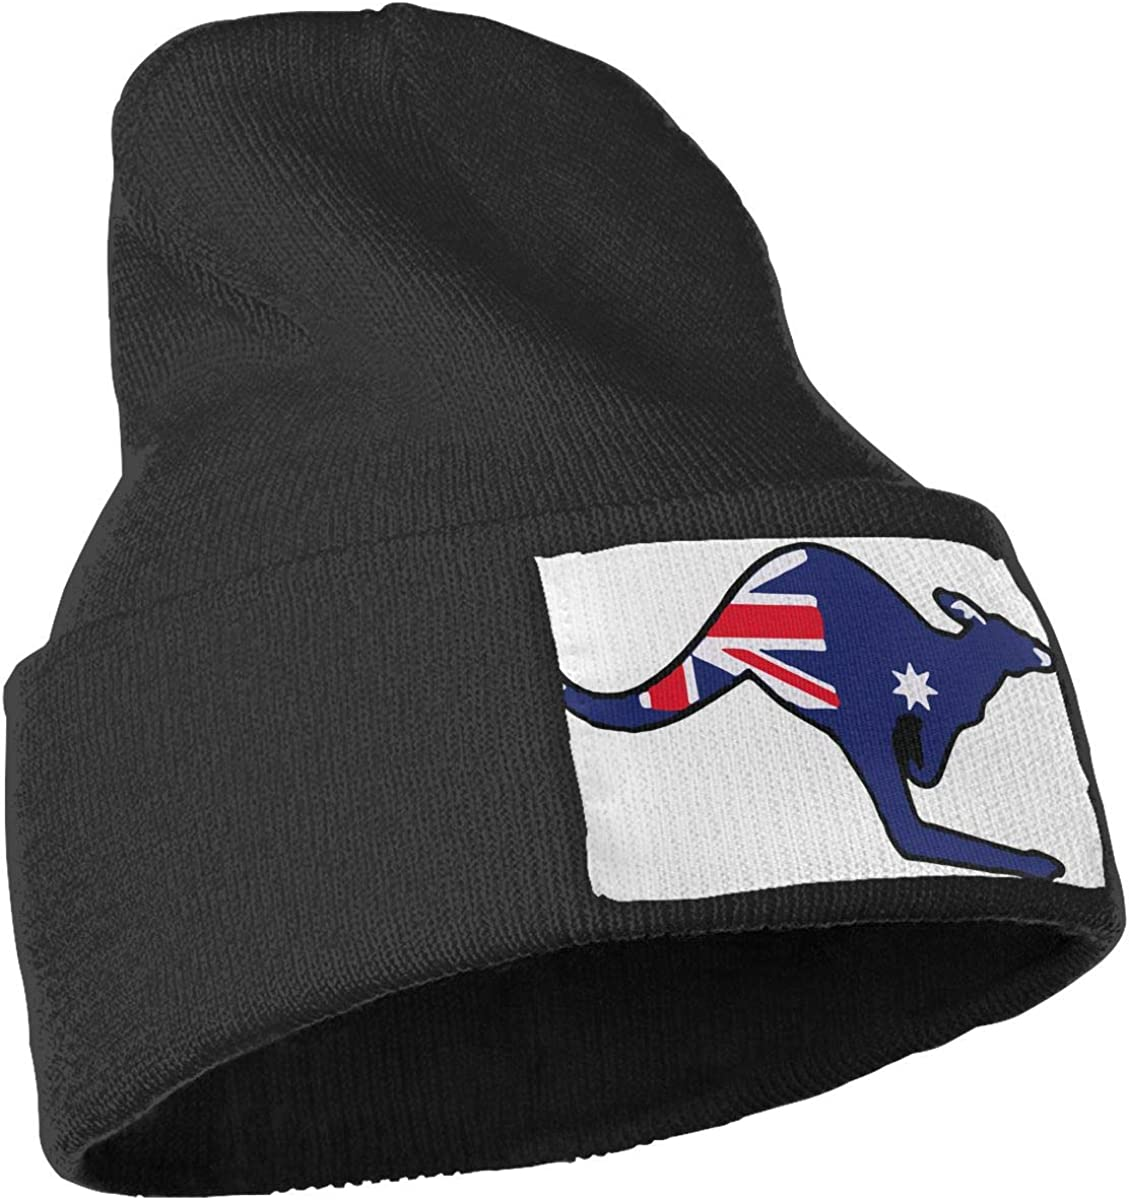 TAOMAP89 New England Because Old England Men /& Women Skull Caps Winter Warm Stretchy Knitting Beanie Hats